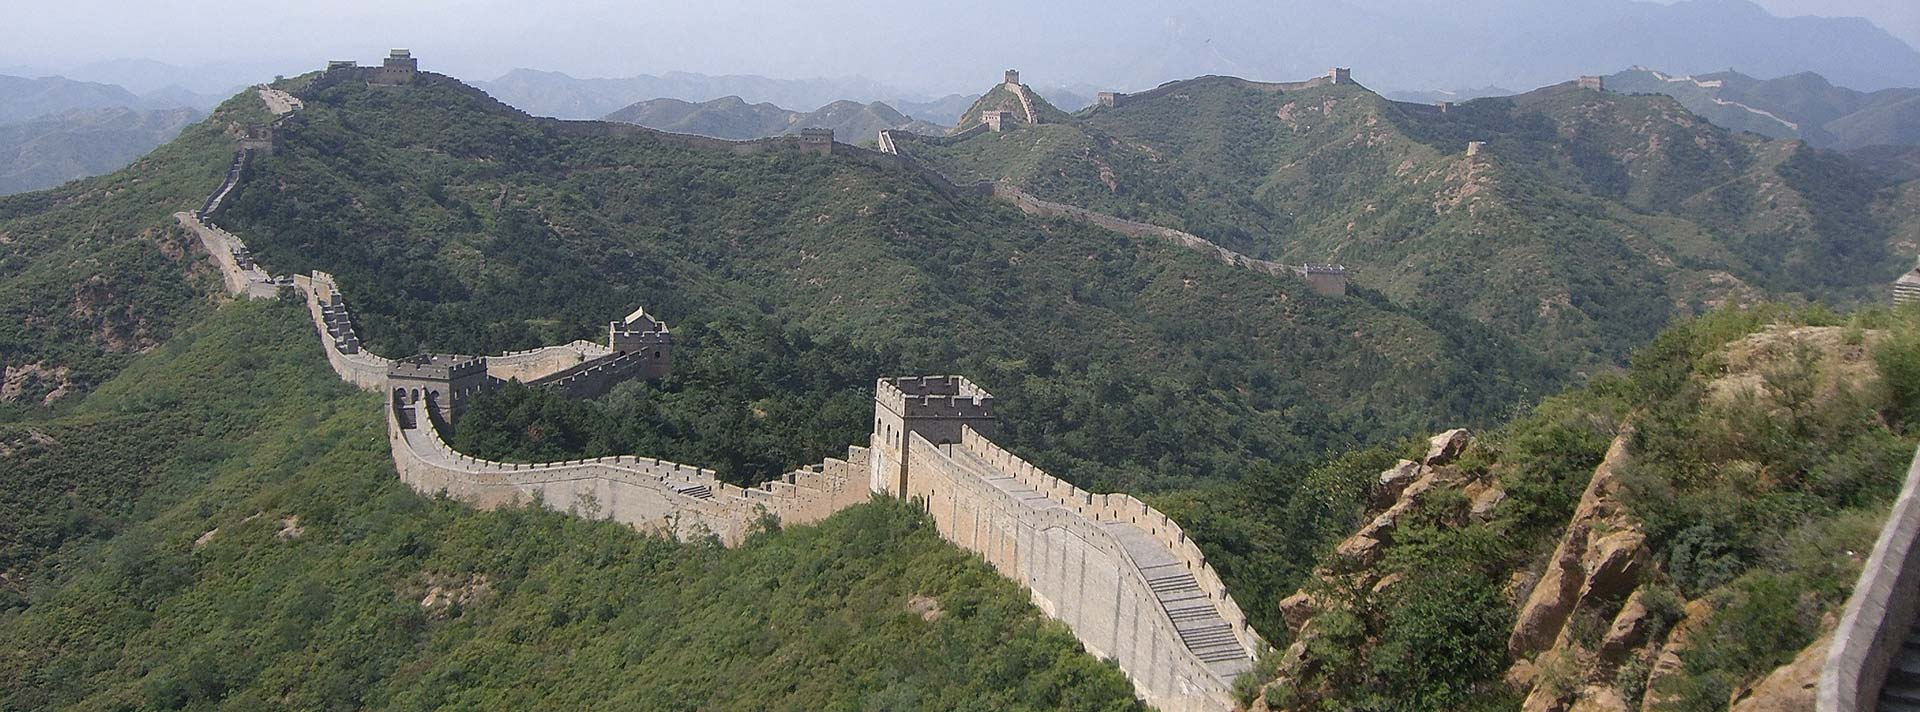 Discounted flight tickets from Los Angeles to Beijing - IFlyFirstClass